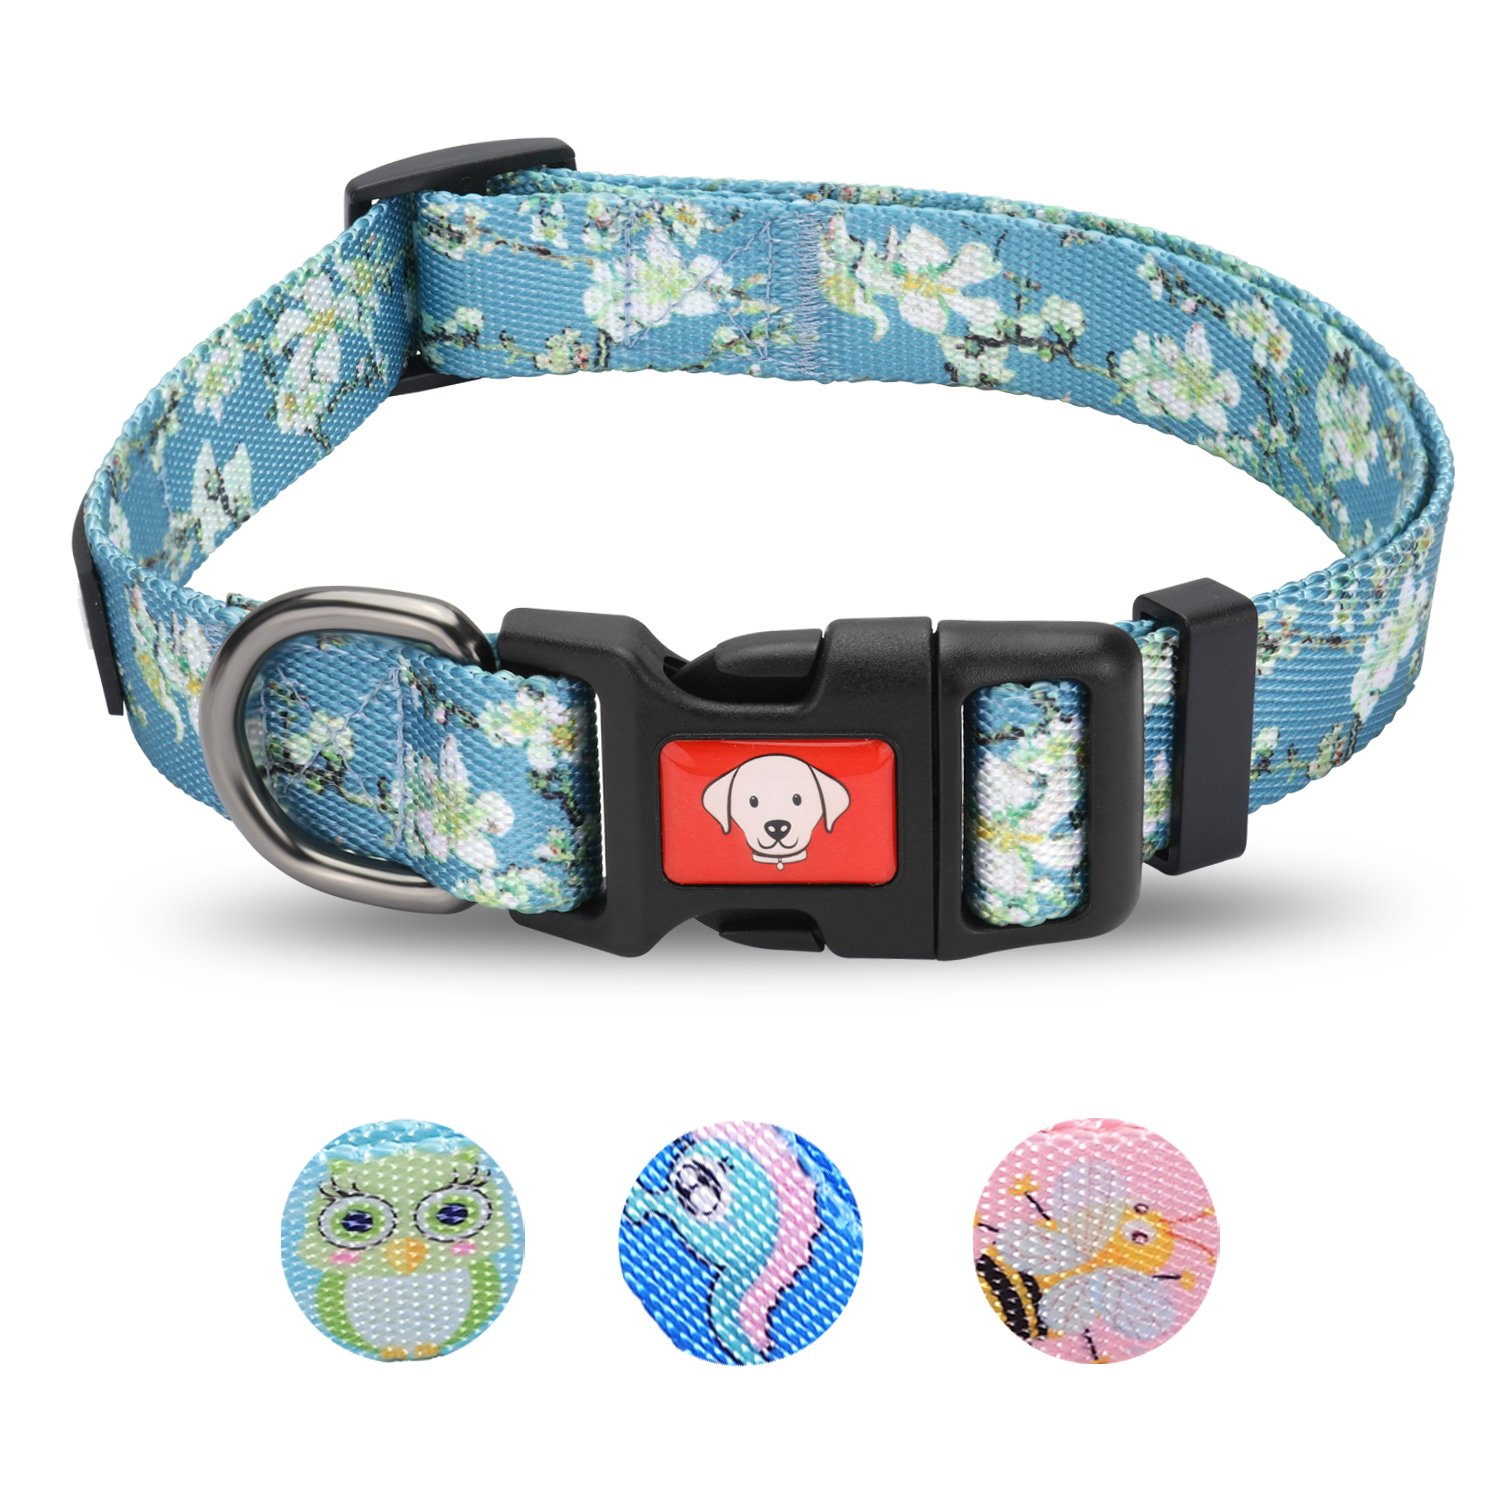 Medium Losong Buckle Dog Collar,Fashion Durable Shiny Polyeste Collars with Apricot Blossom Pattern,Adjustable Collar for Boy & Girl Dogs,Neck 13.8 -20.9 ,Medium(Turquoise)